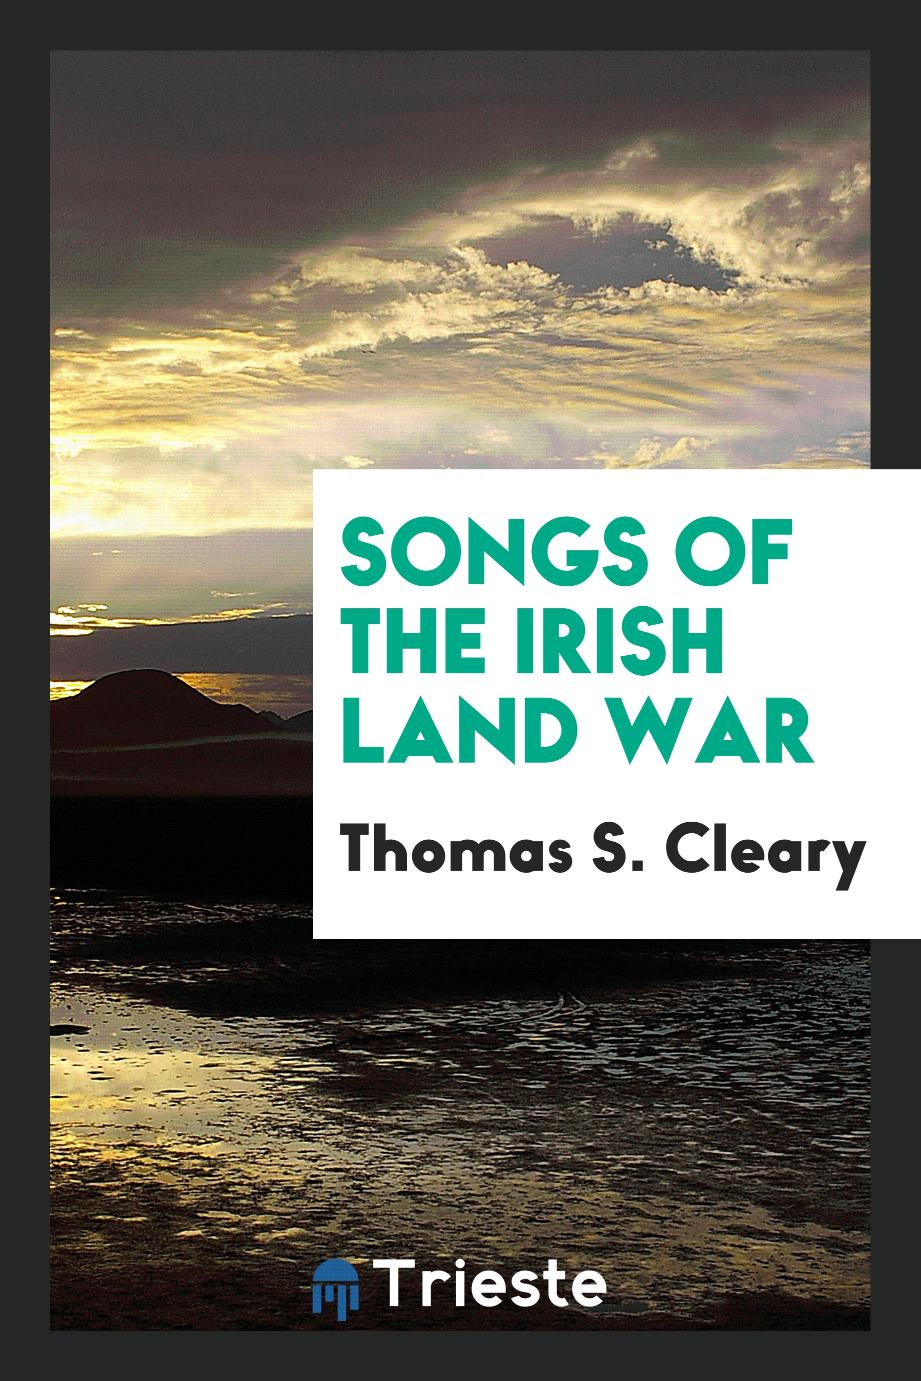 Thomas S. Cleary - Songs of the Irish Land War